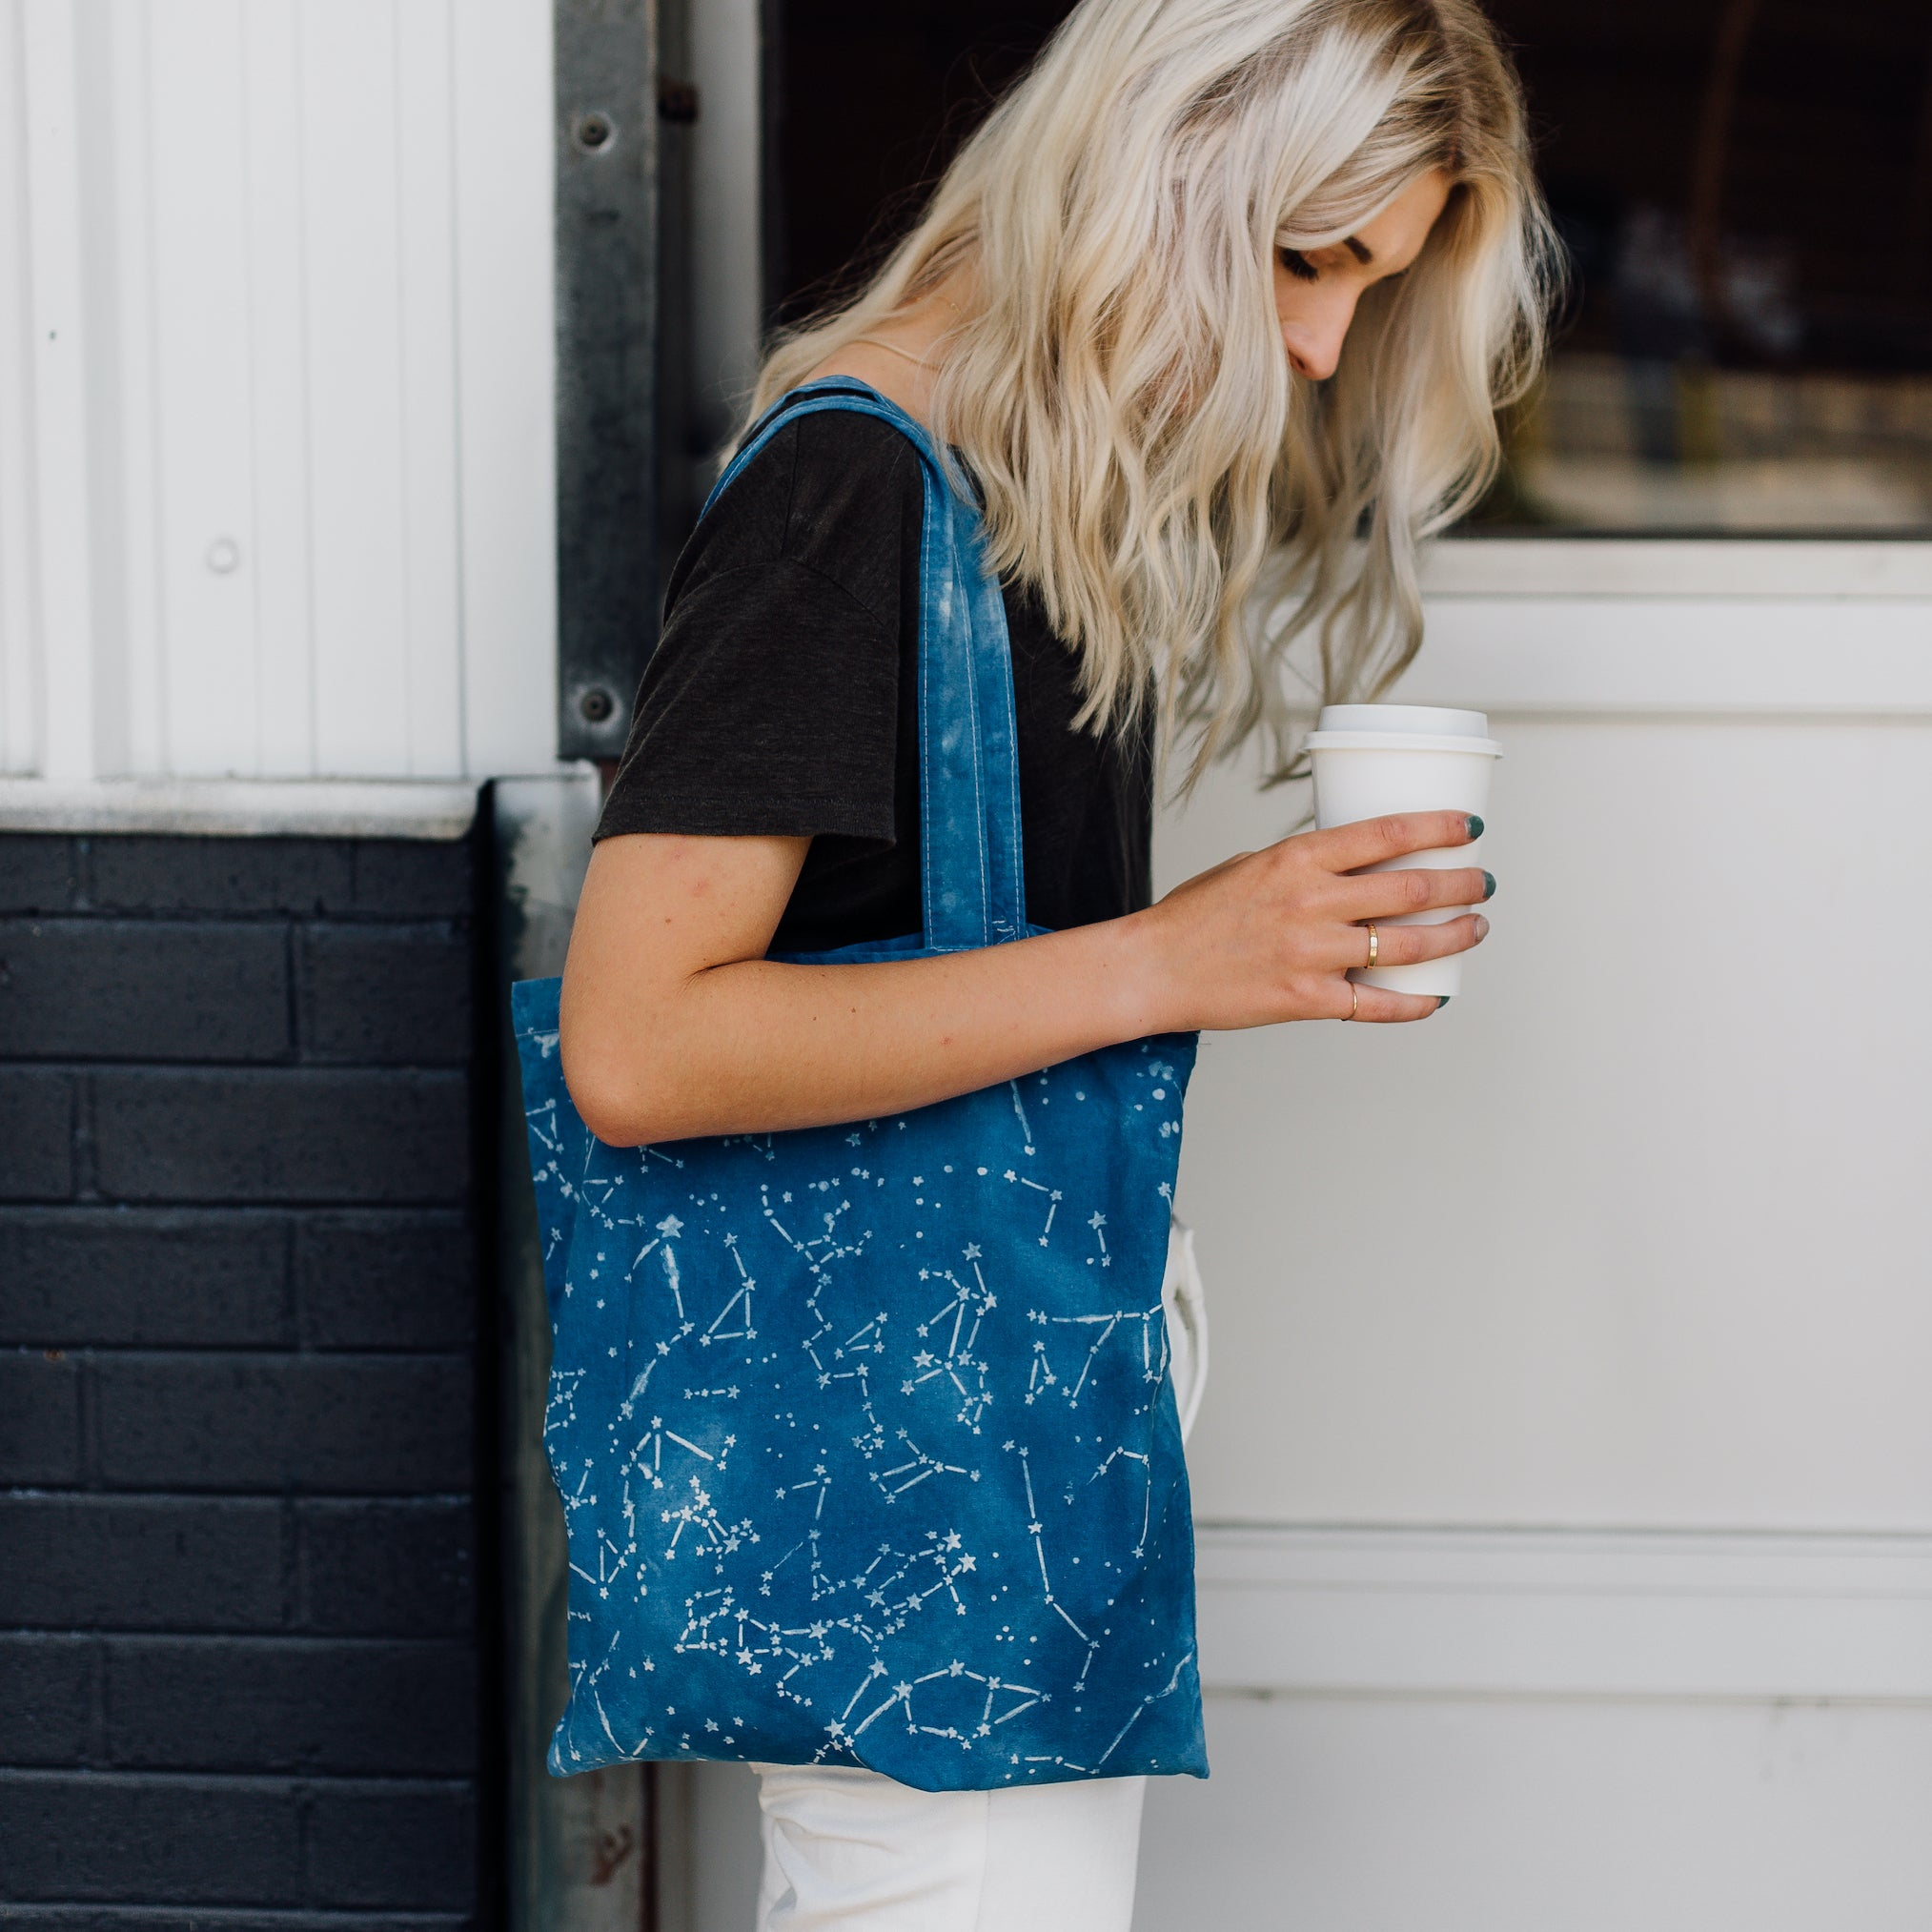 Woman carrying take-out coffee and wearing shoulder bag dyed using clay resist and a stencil to create constellation patterns